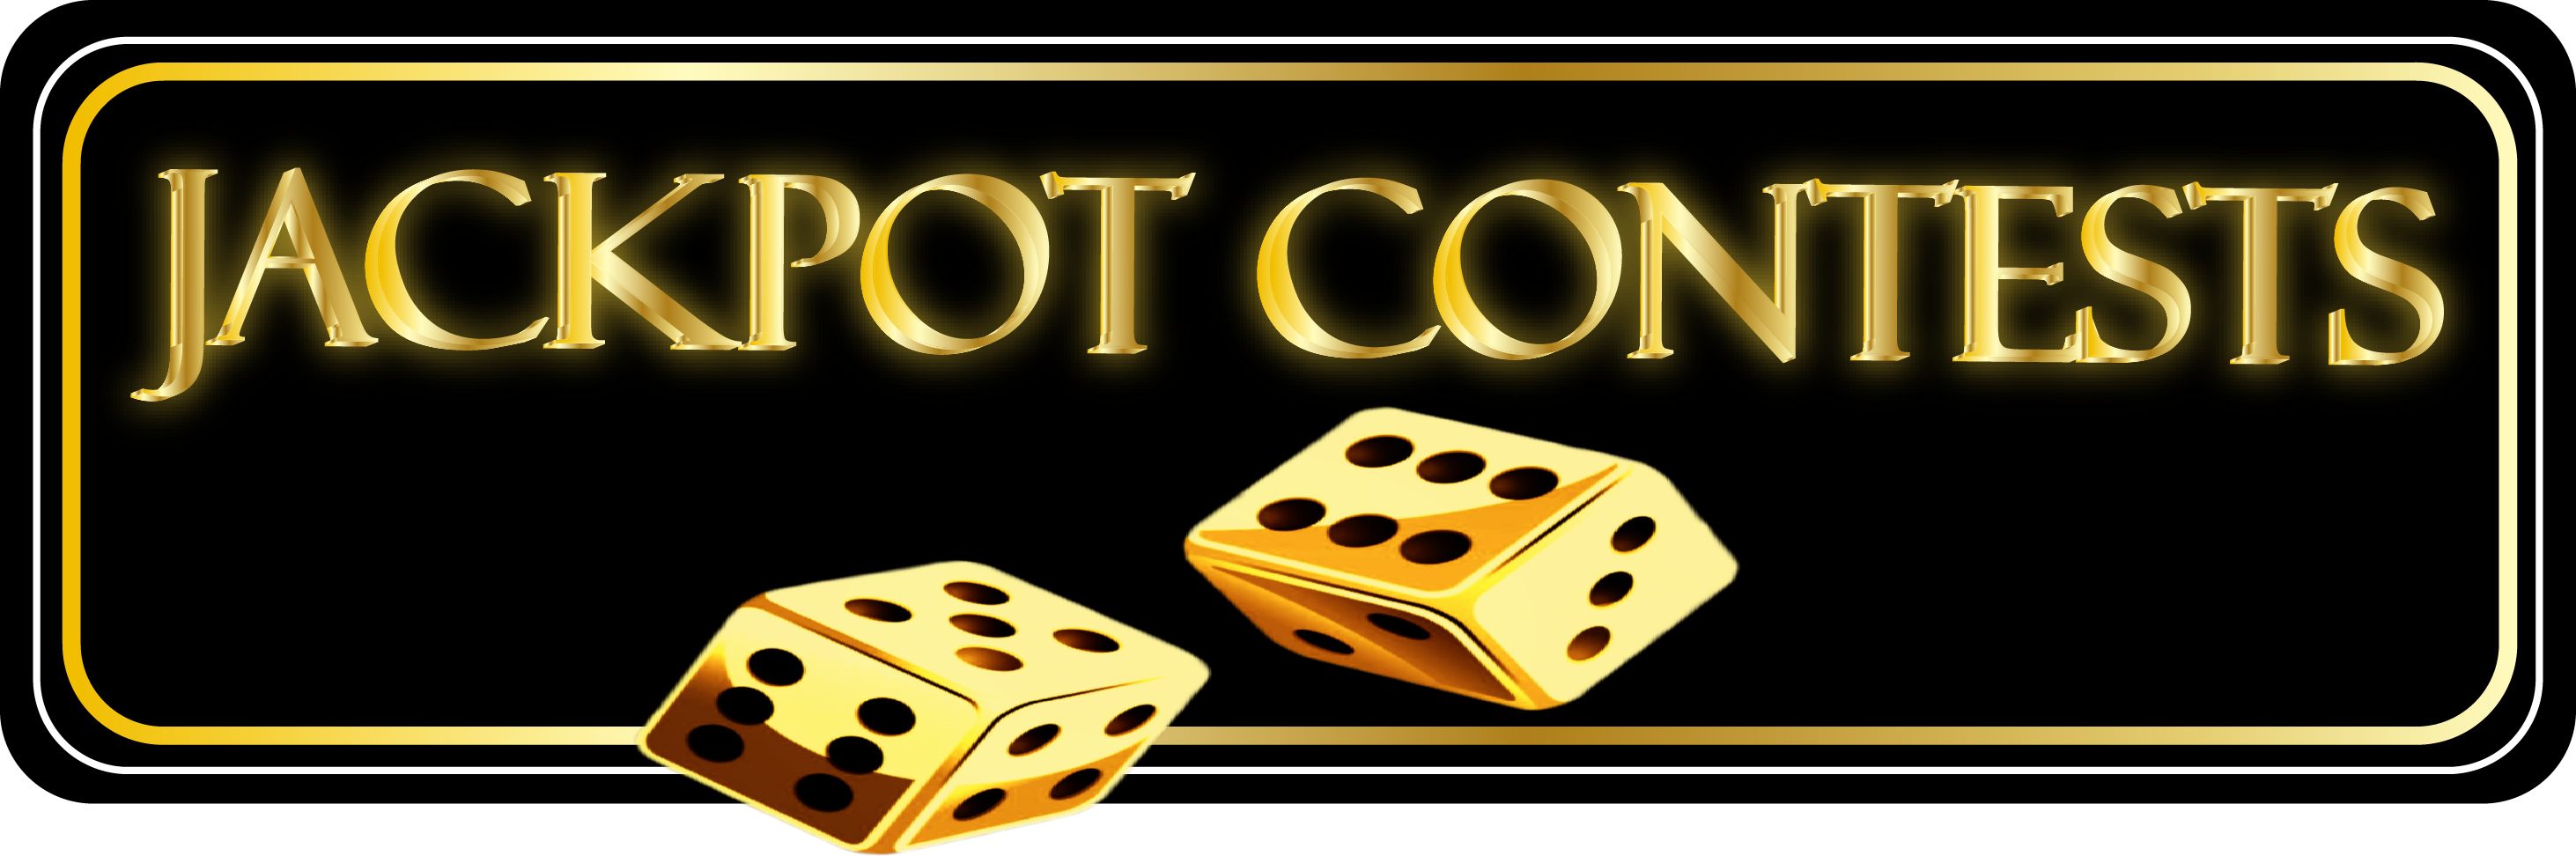 Jackpot contest banner.png